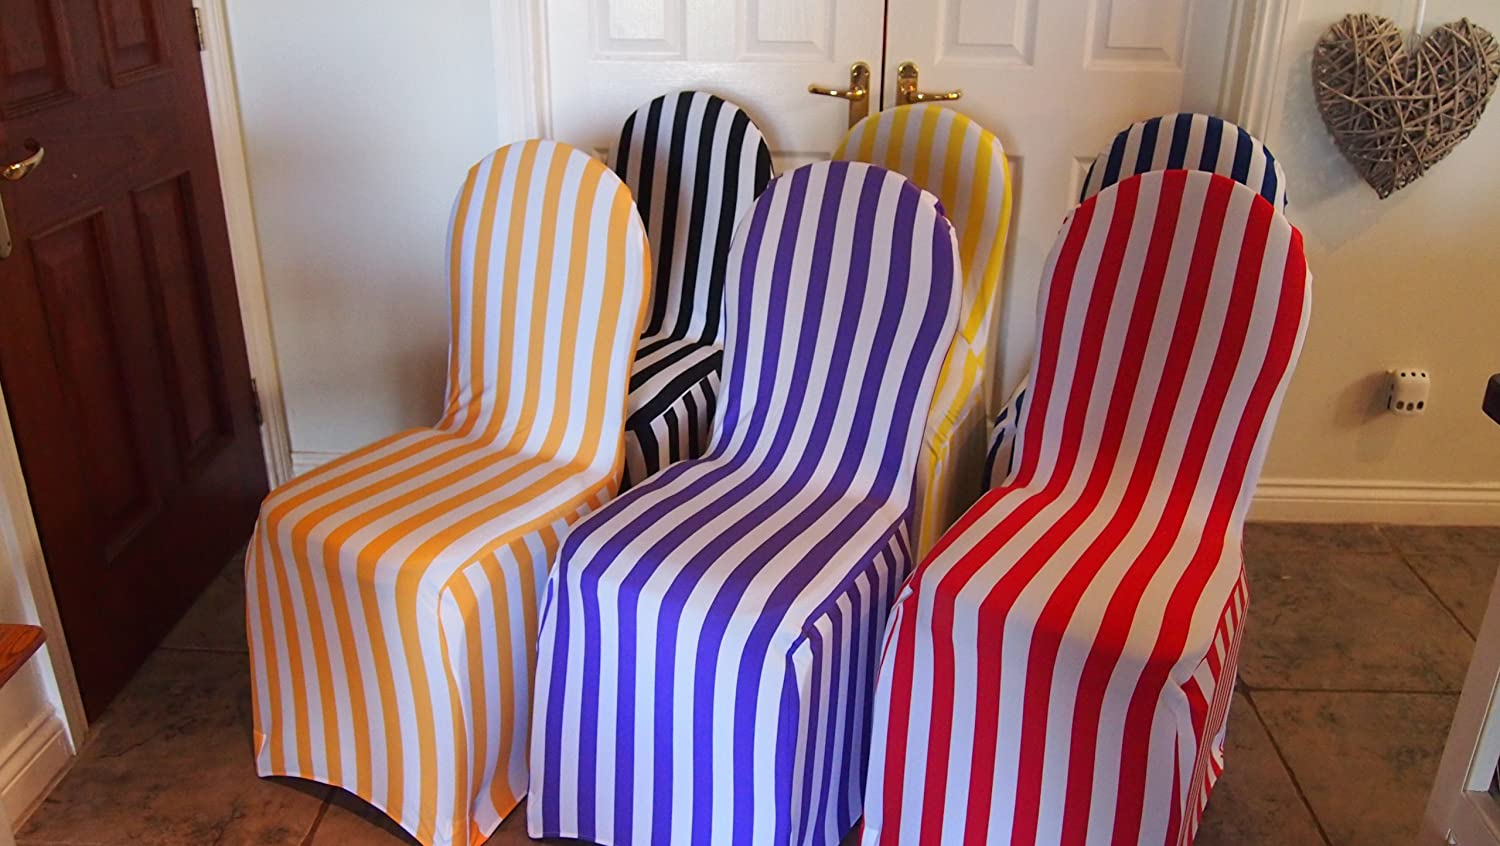 Ordinaire Dining Room Chair Covers   Striped (Blue Stripe) Other Stripey Covers  Available: Amazon.co.uk: Kitchen U0026 Home